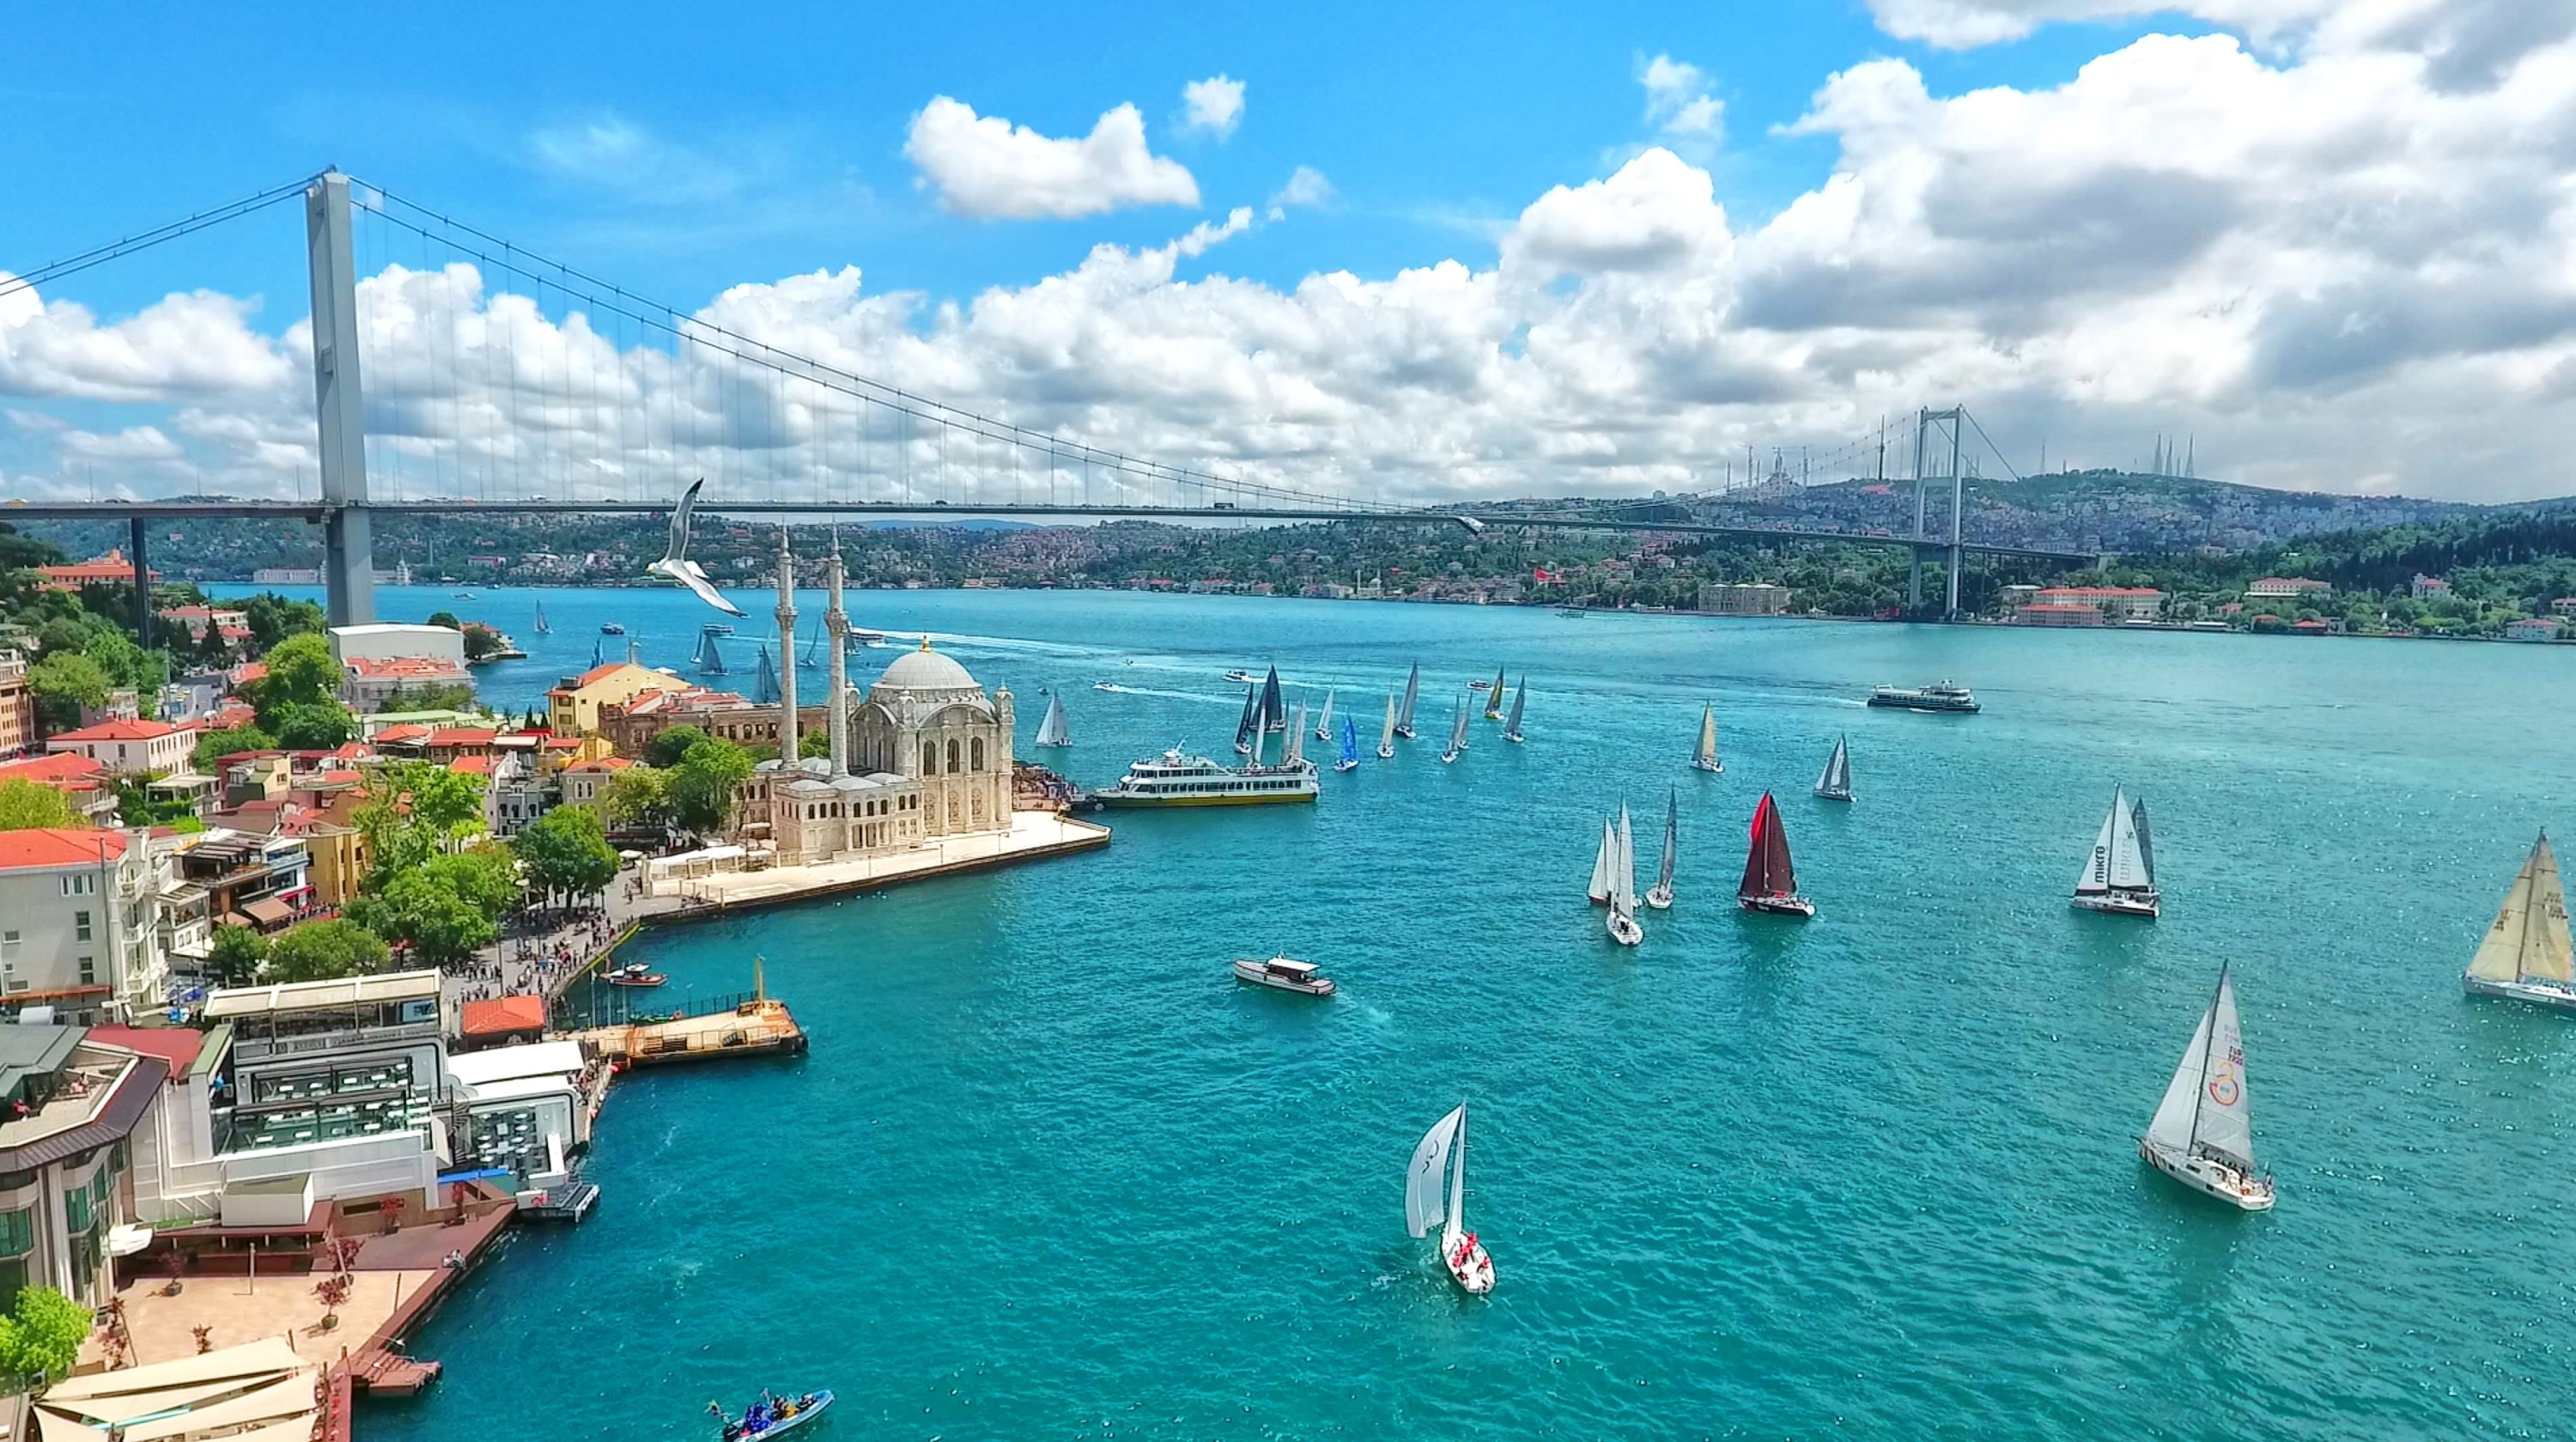 General view of Istanbul's Bosporus and the July 15 Martyrs Bridge. (Shutterstock Photo)